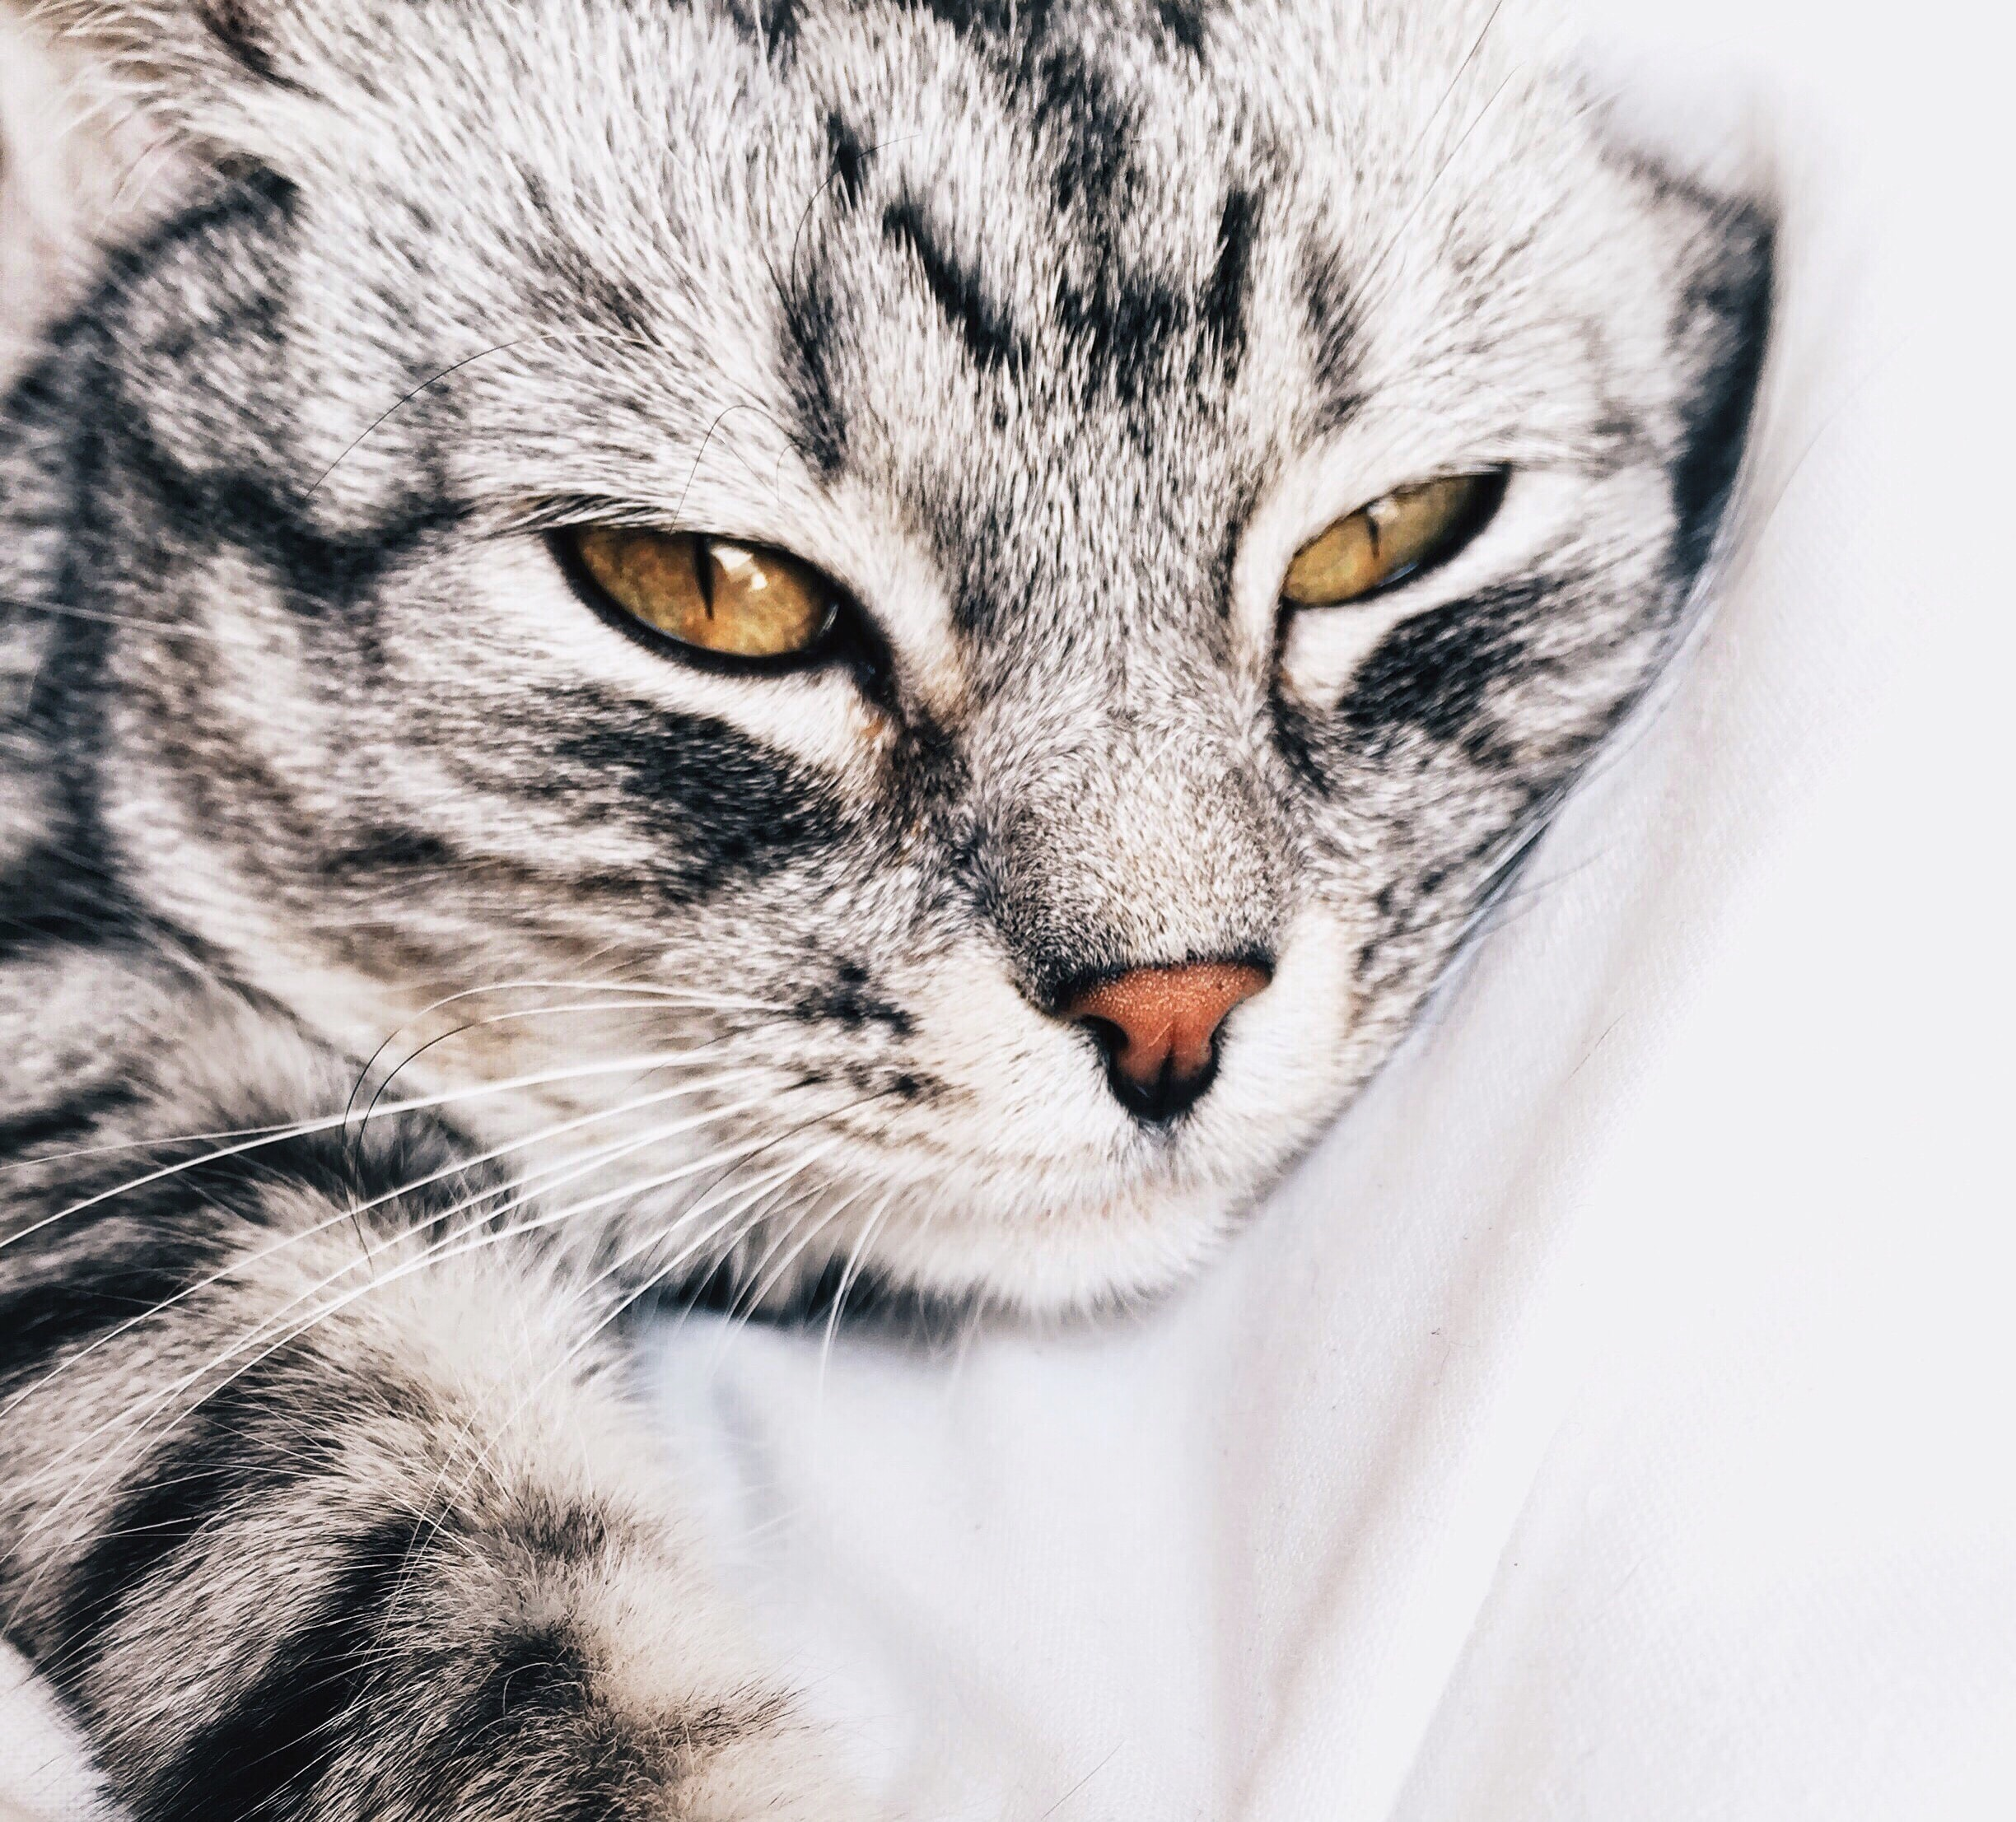 Close-up of a tabby cat lying down with its eyes half-closed